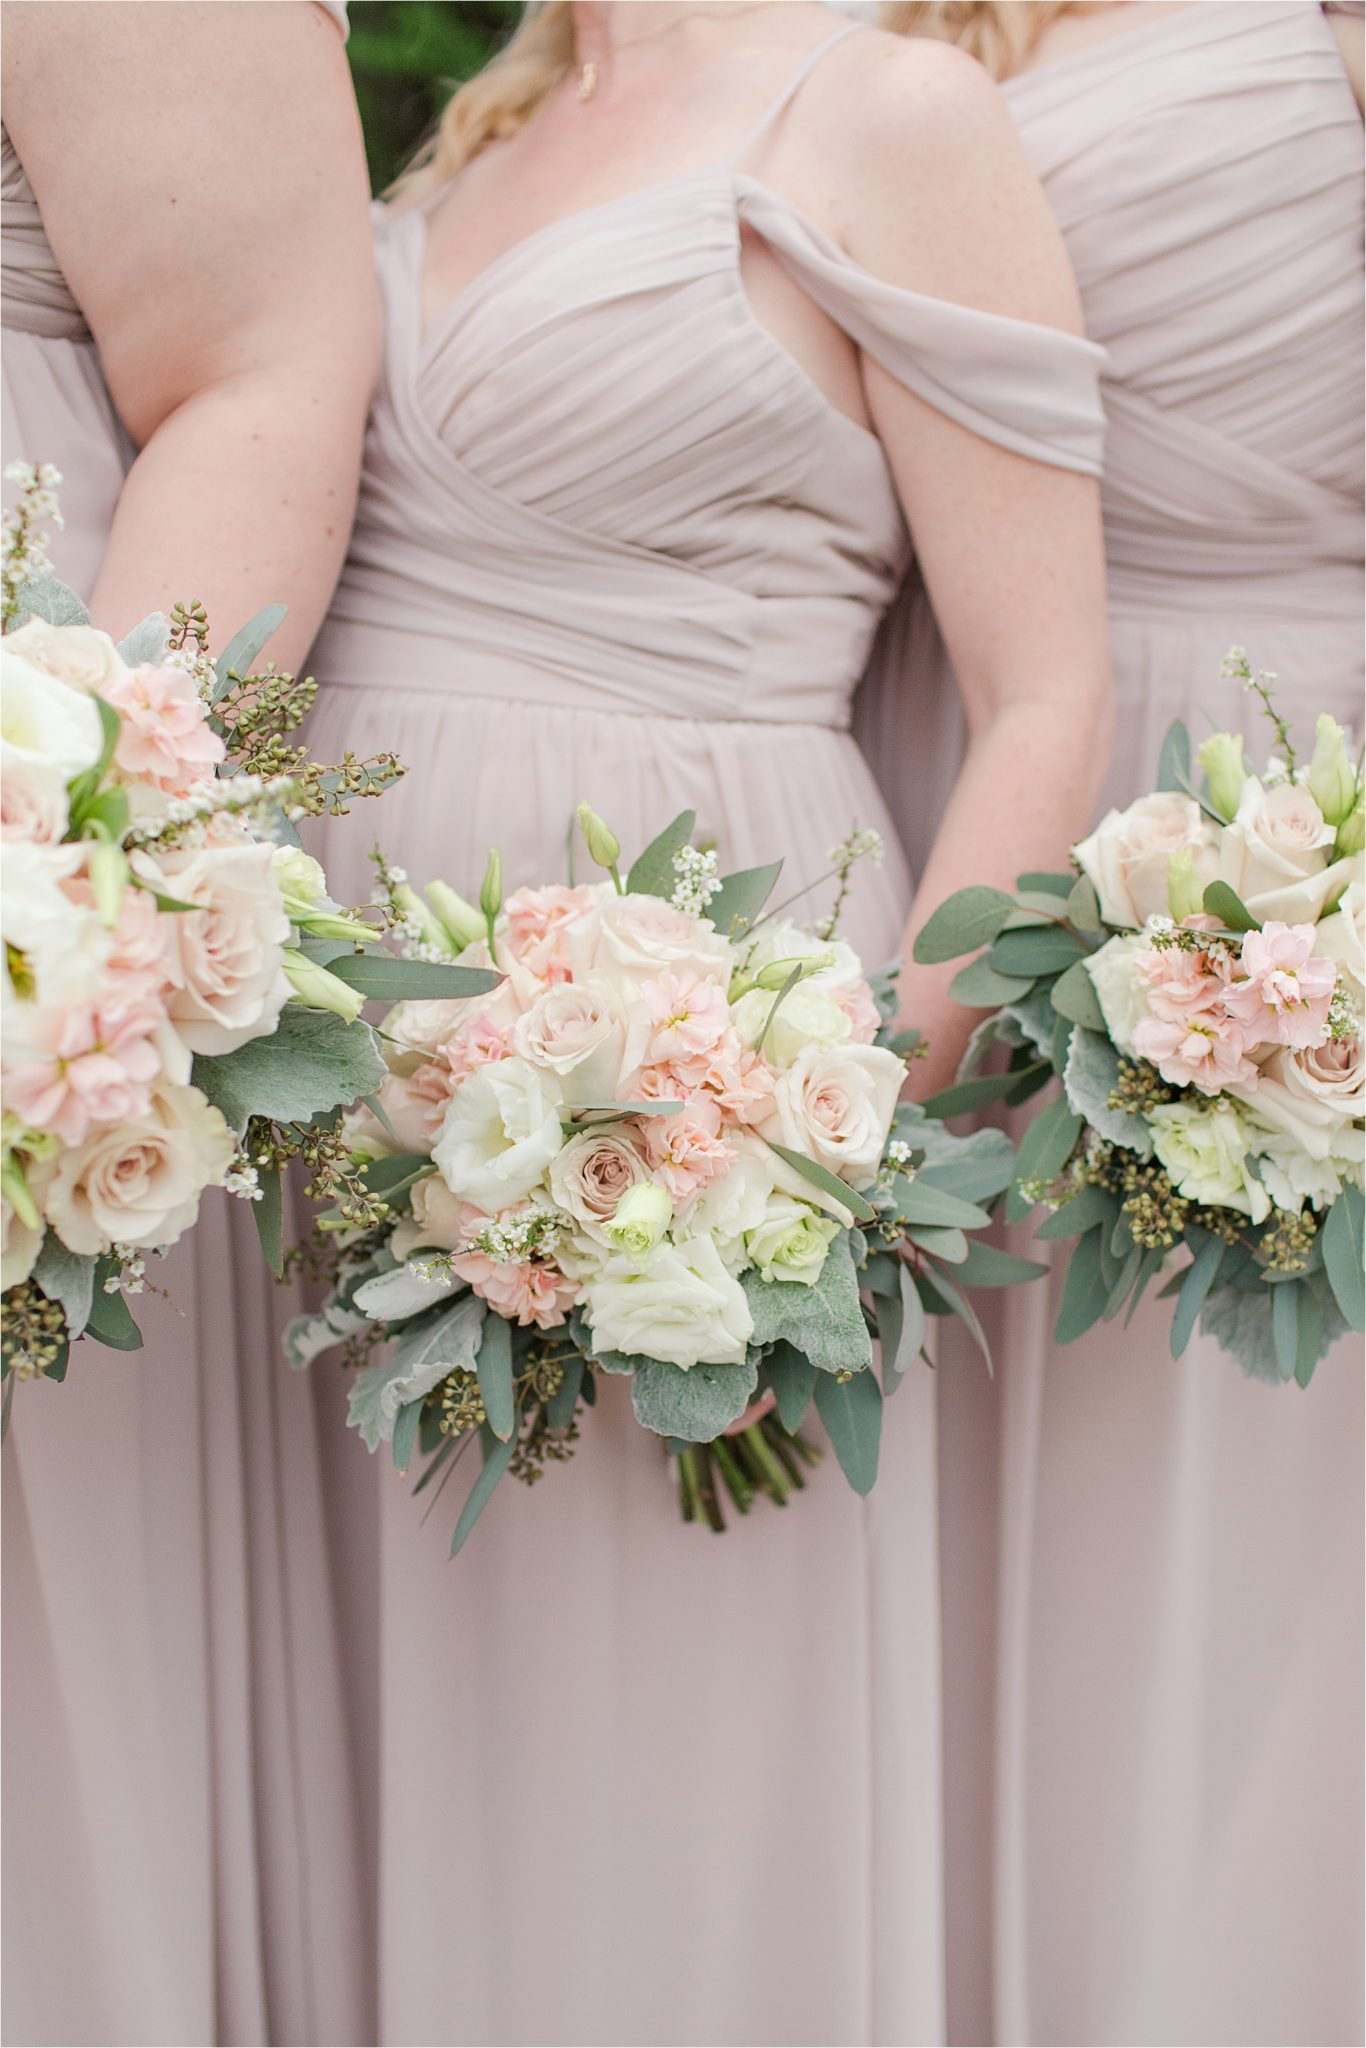 blush bouquet-blush and neutrals-wedding-bridesmaid dresses-draping shoulder bridesmaid dresses